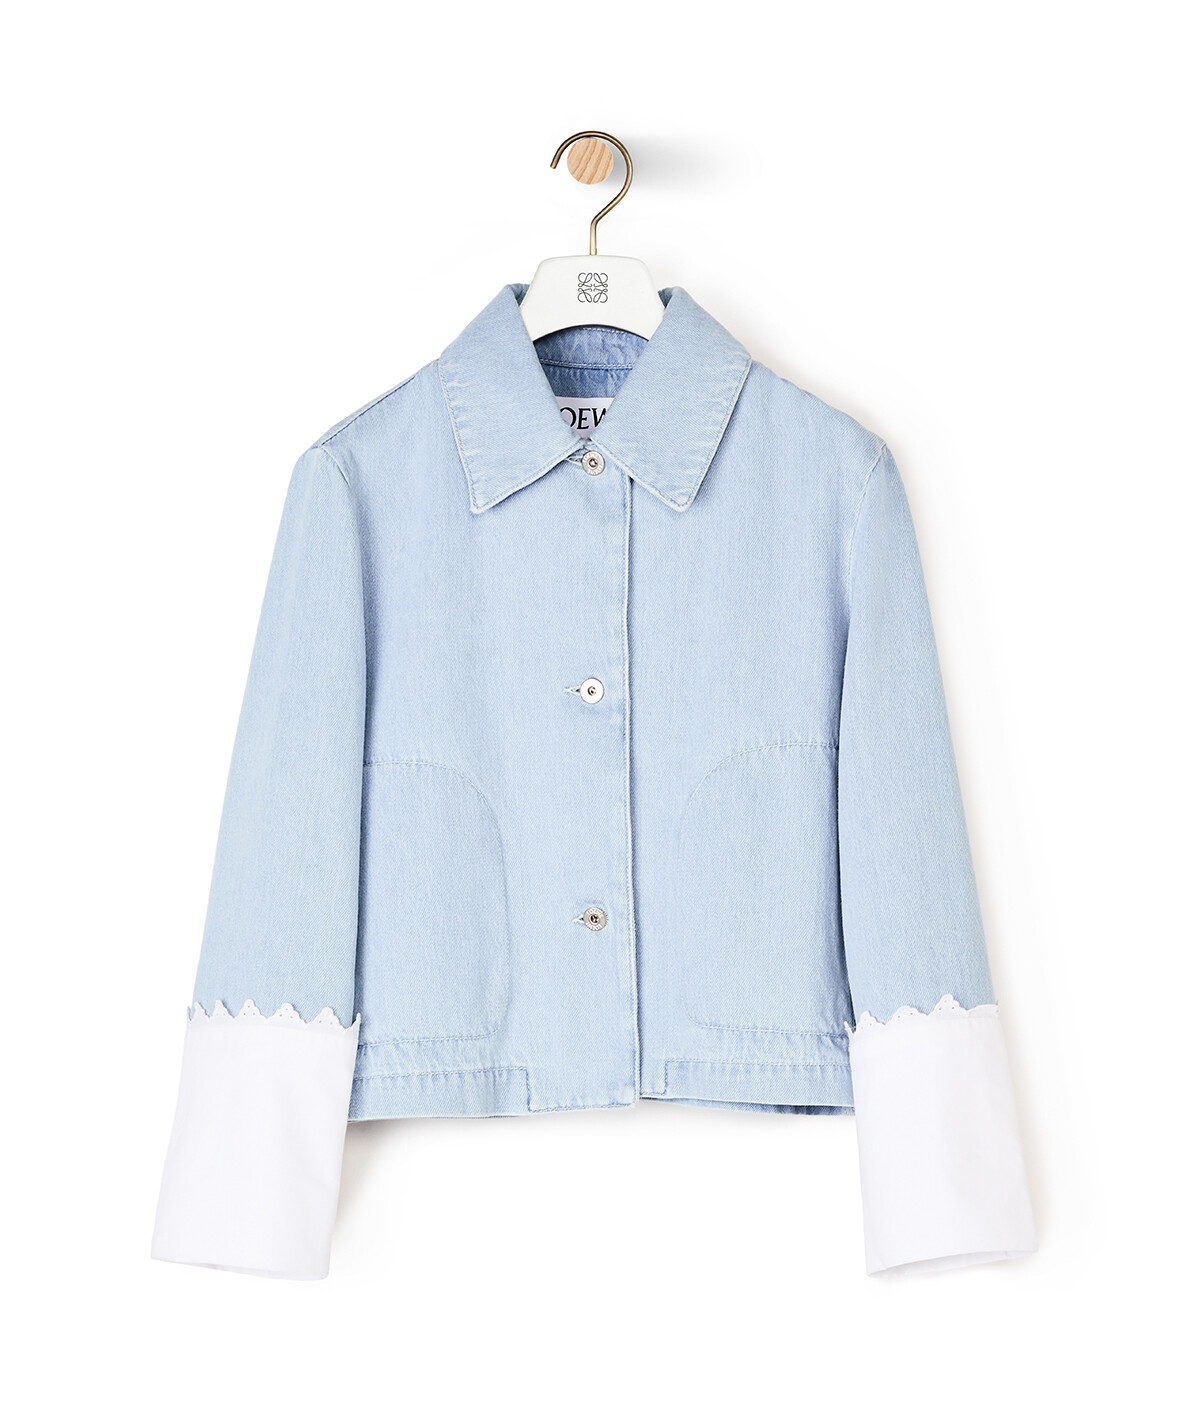 LOEWE Denim Jacket Embroidered Cuffs Azul Claro front